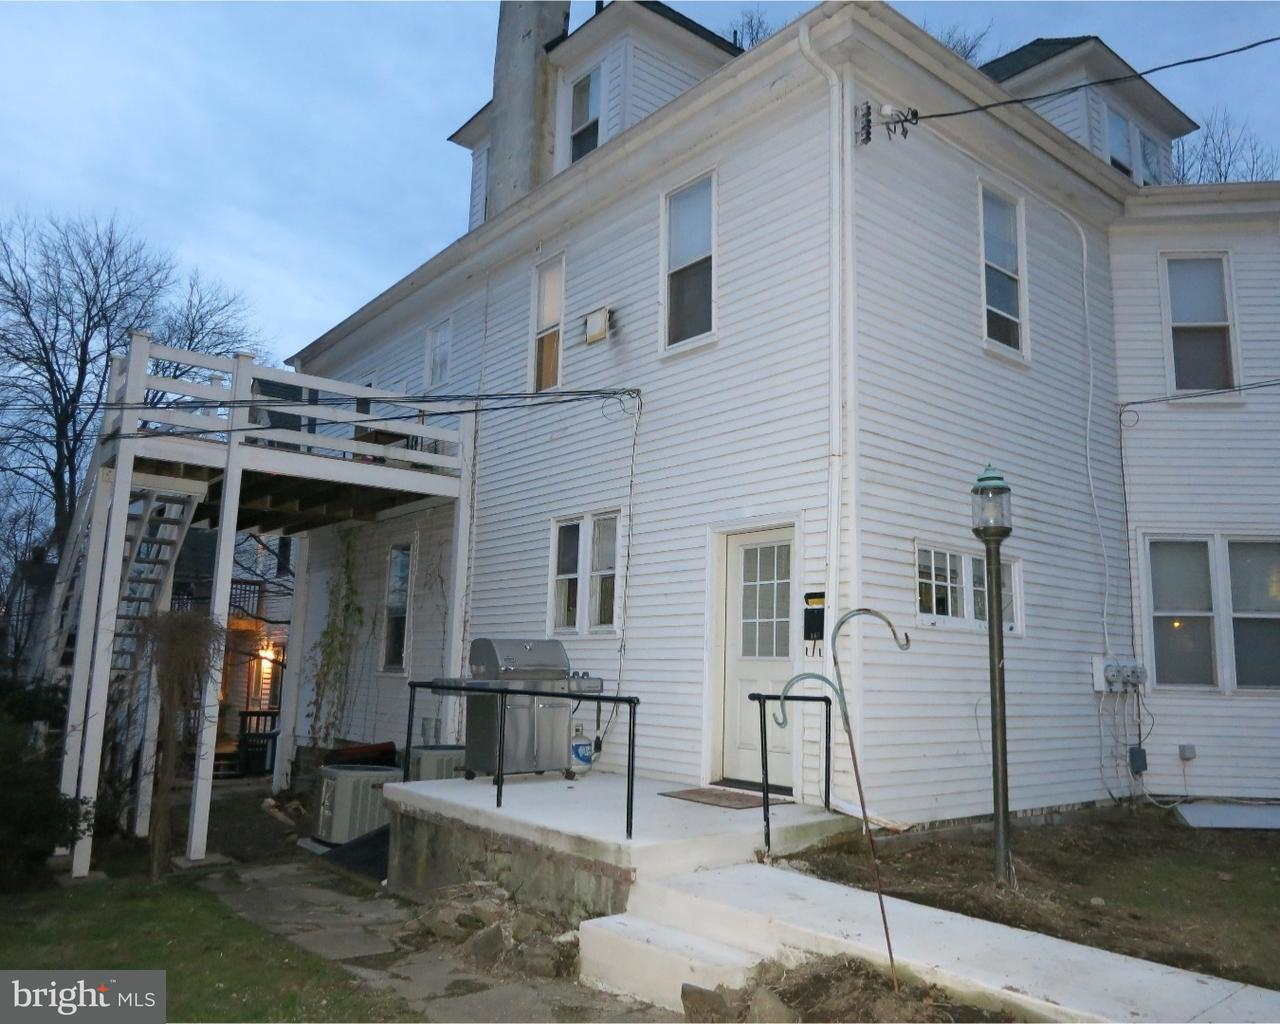 165 S MAIN ST, DOYLESTOWN - Listed at $1,350,